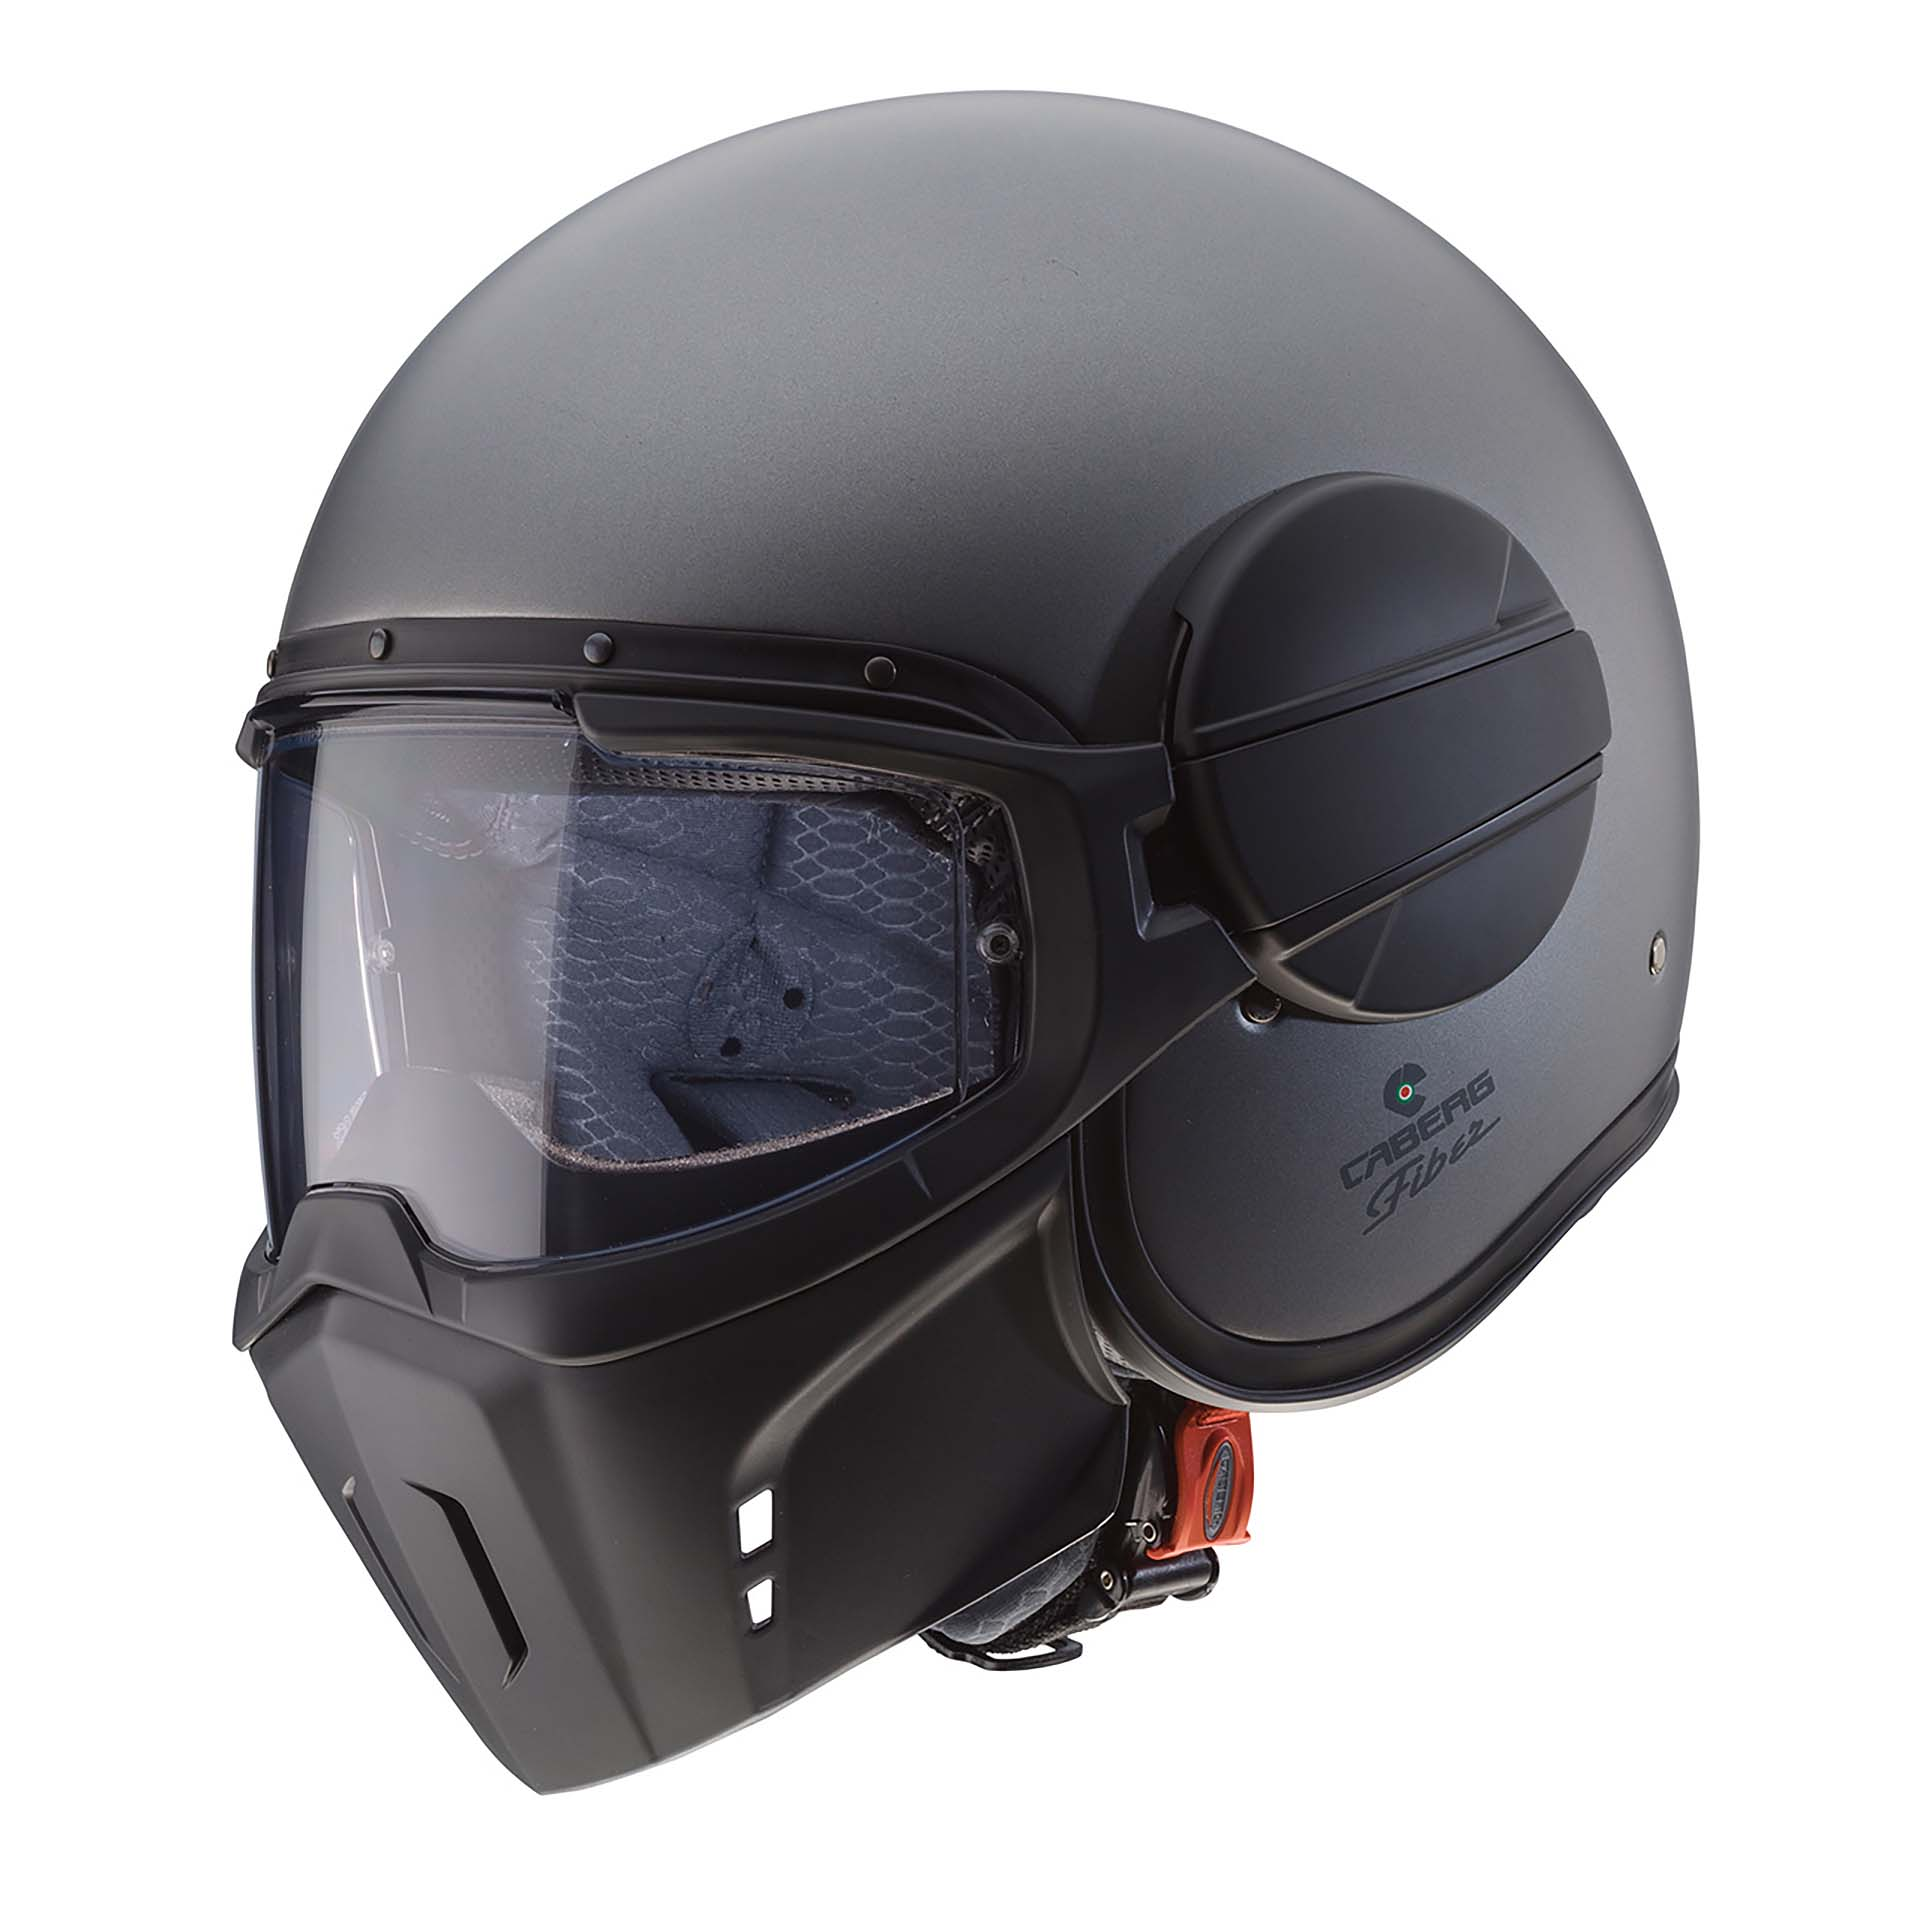 Casco Caber Ghost color nero opaco